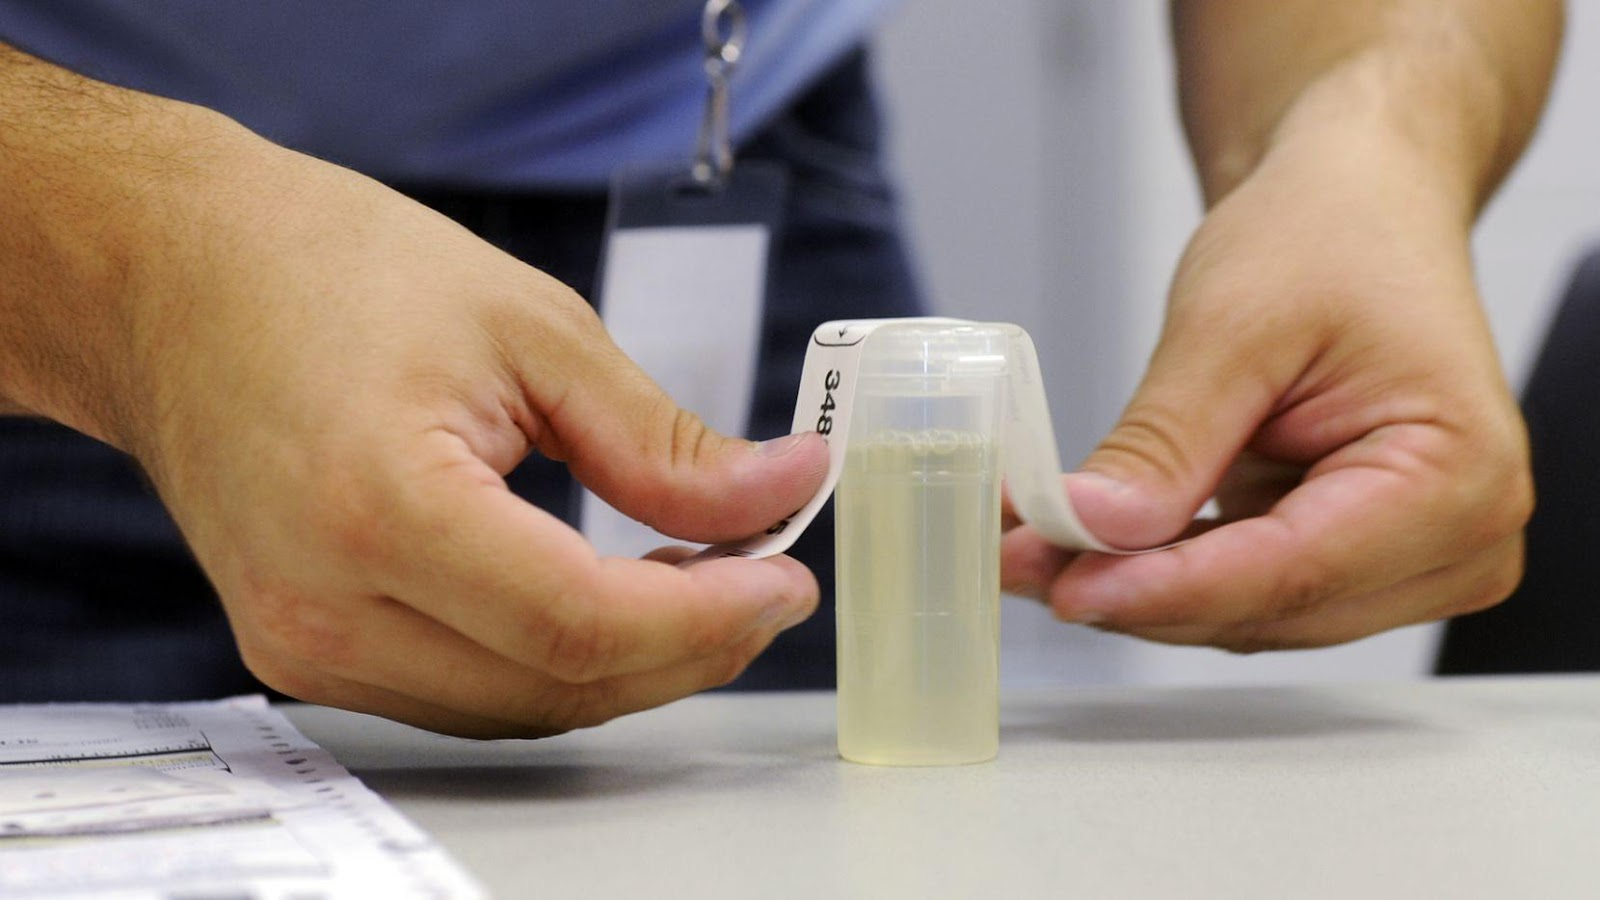 Two men back in prison for trying to cheat drug tests with Whizzinator and  fake urine